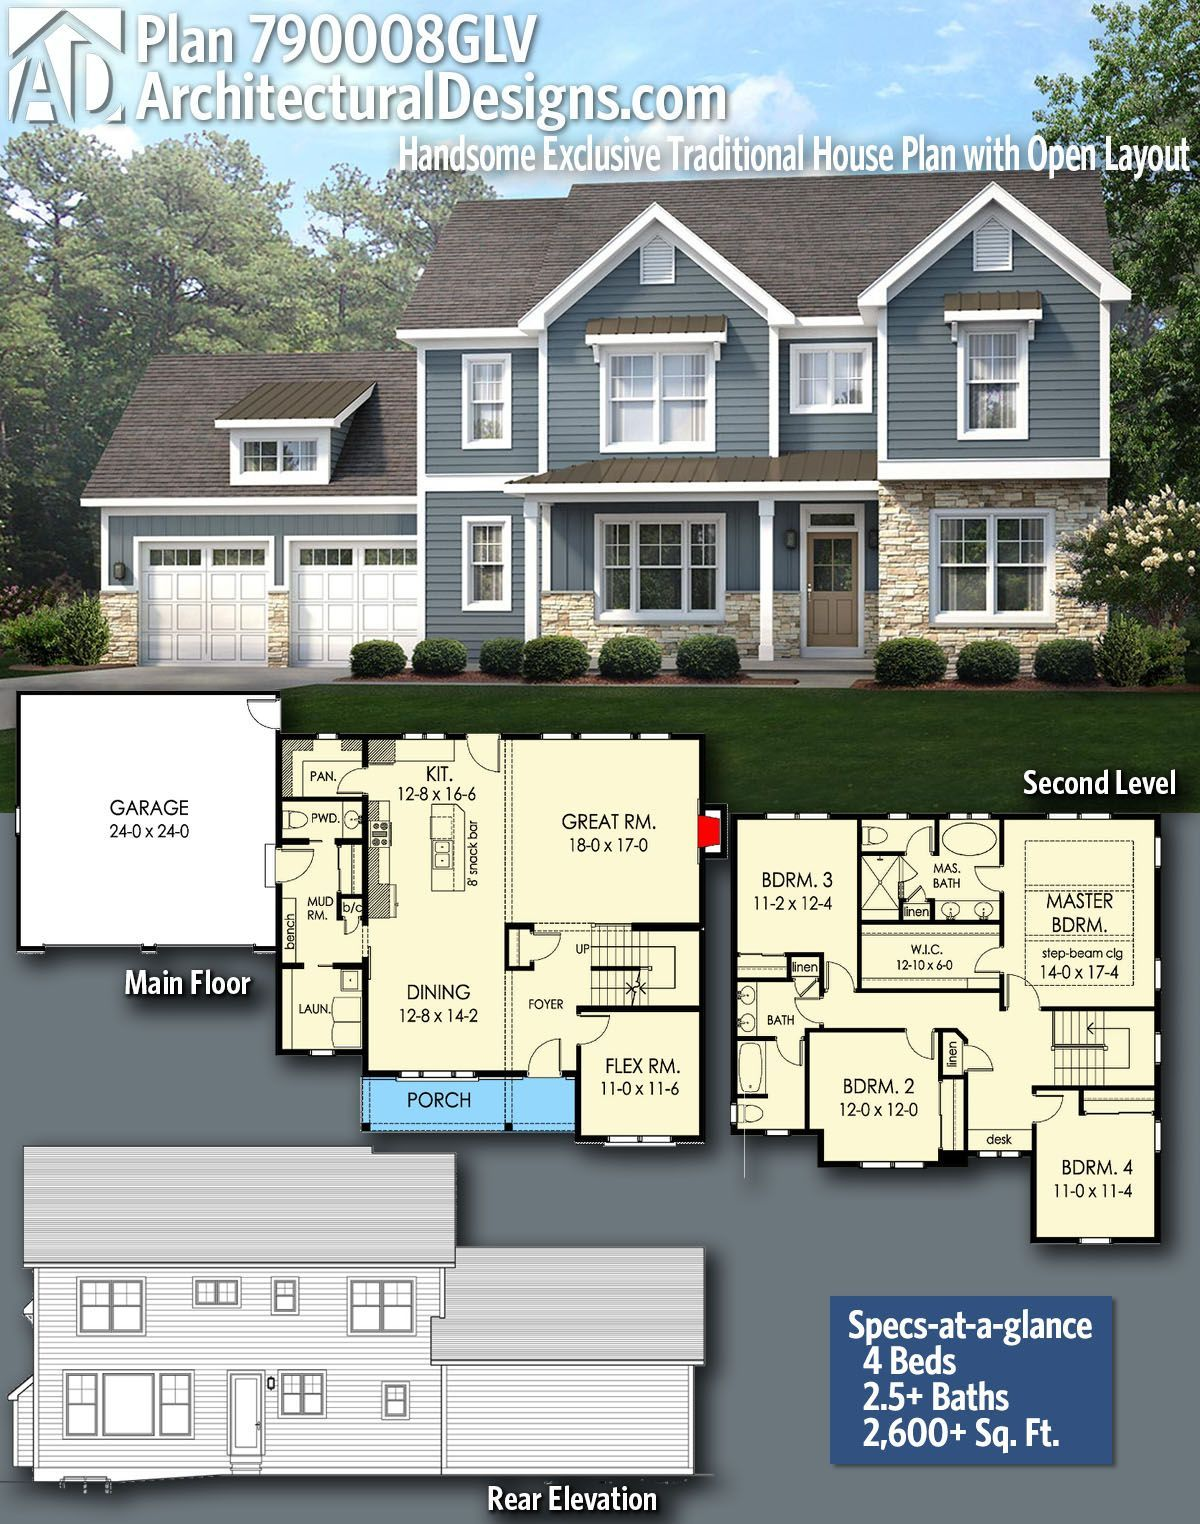 Traditional House Plans With Open Floor Plan In 2020 House Blueprints Family House Plans Sims House Plans